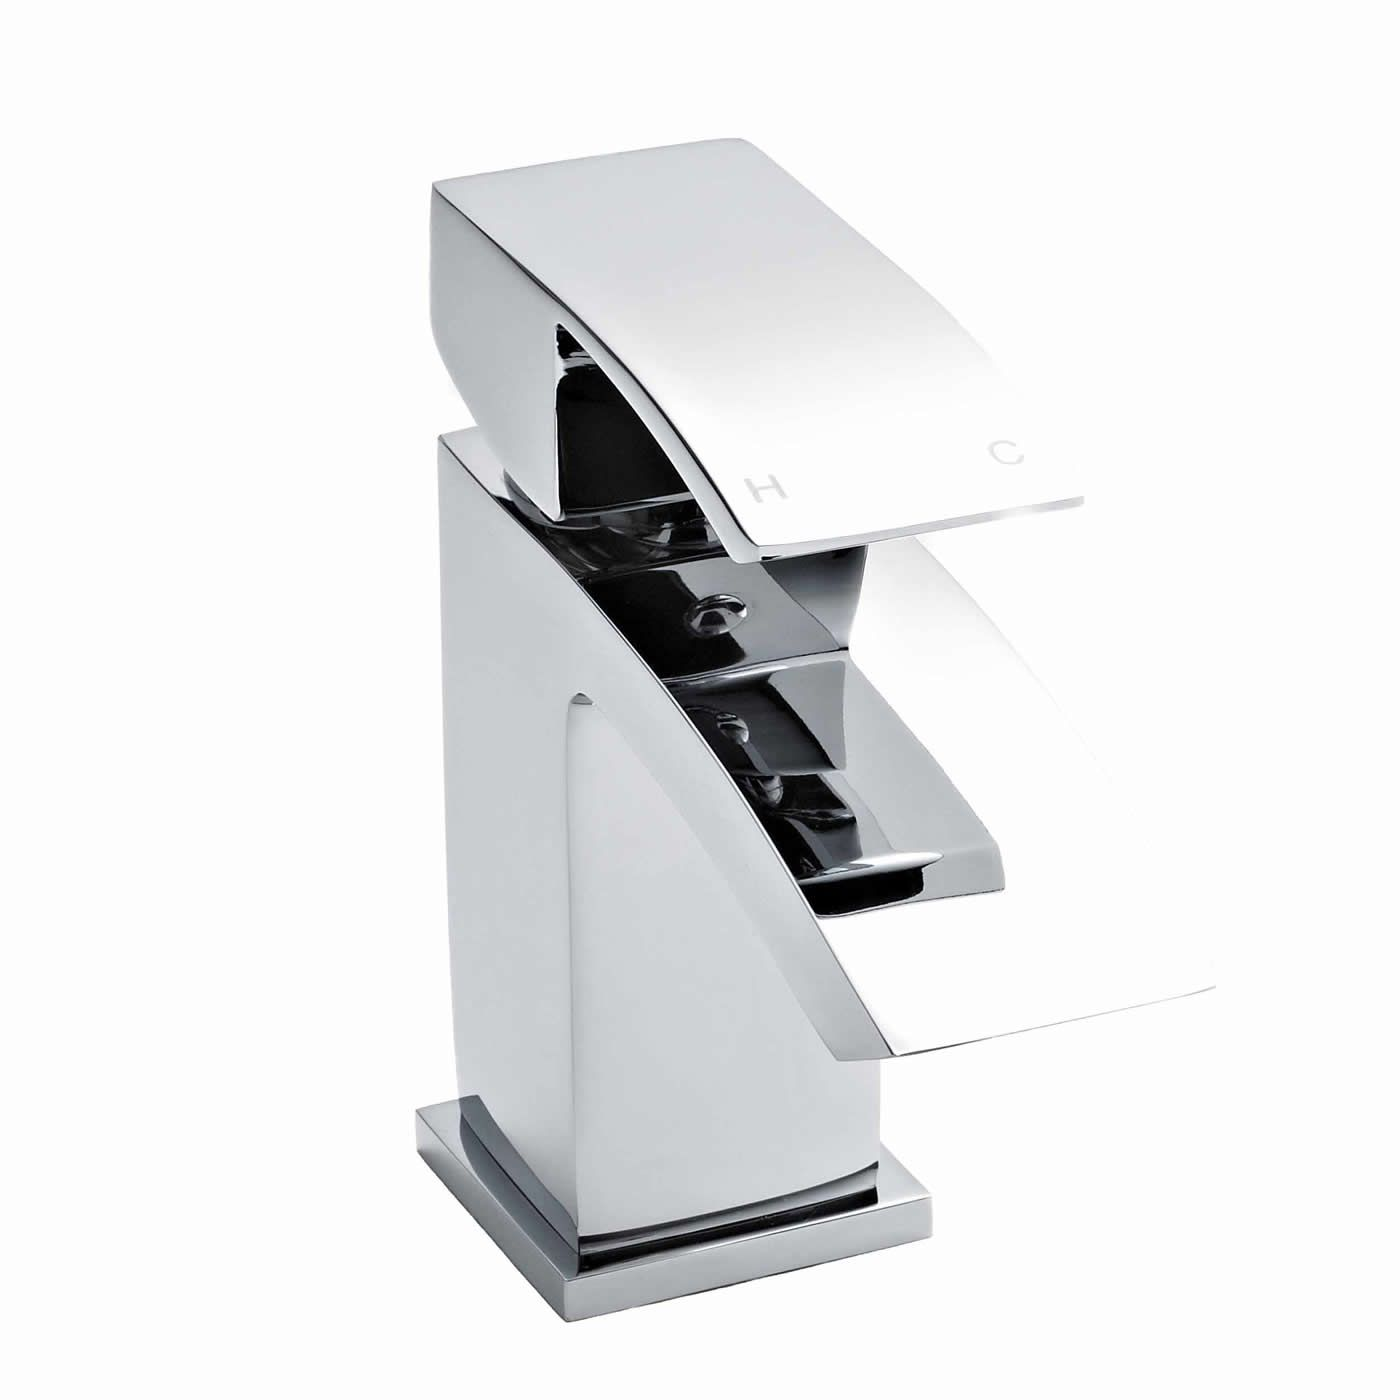 Shanks sink and stand reclaimed porcelain sinks and chrome stands - Chrome Lazor Mono Basin Tap Without Waste Image 2